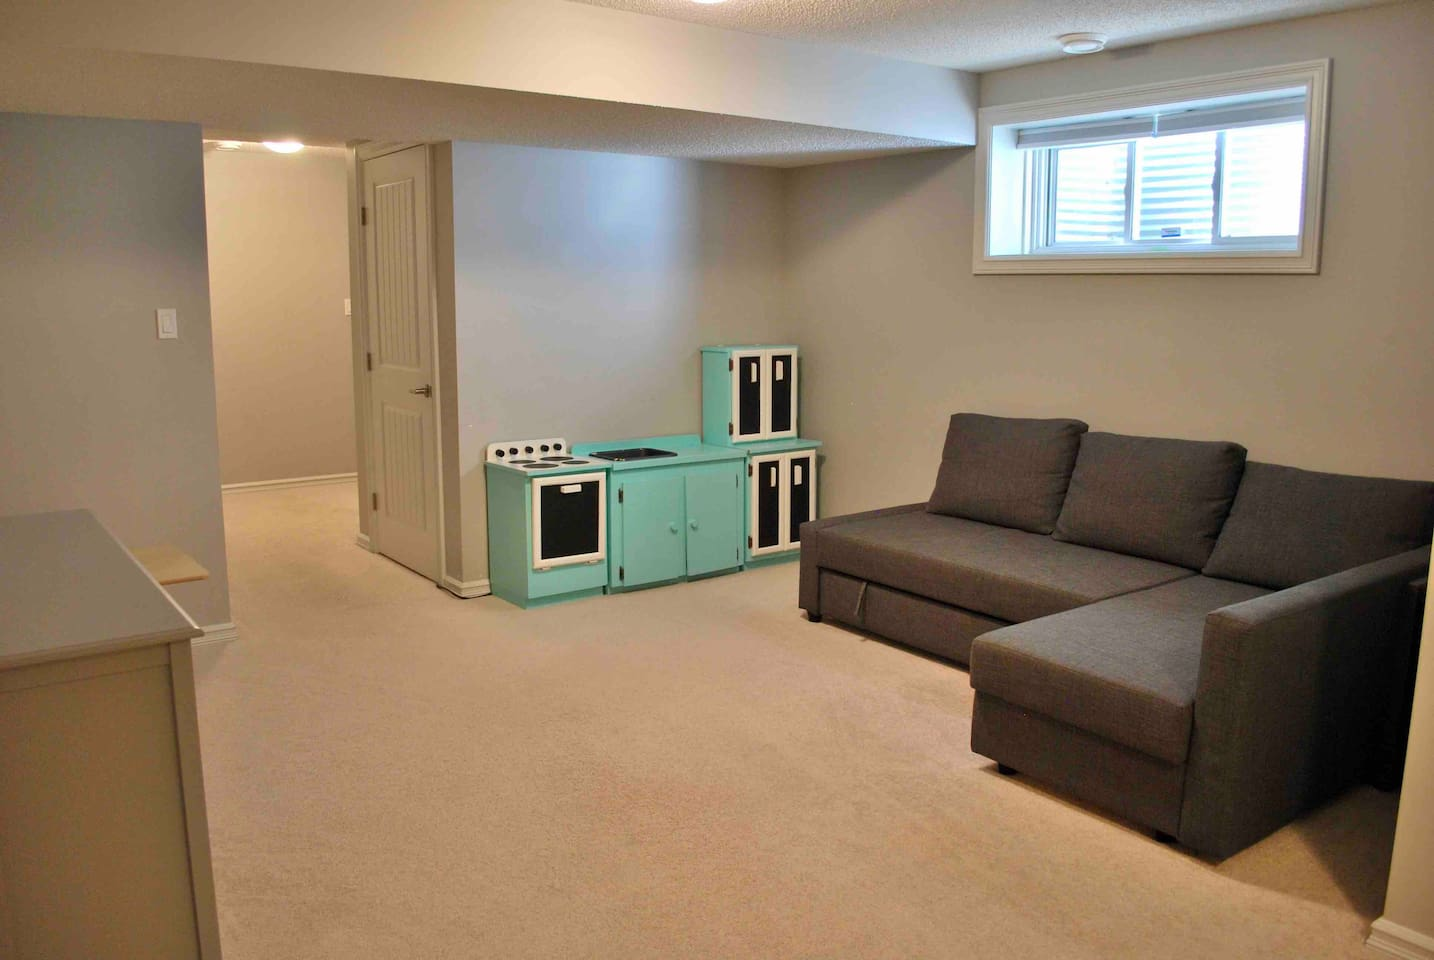 Living room with double sofa bed and children's play kitchen